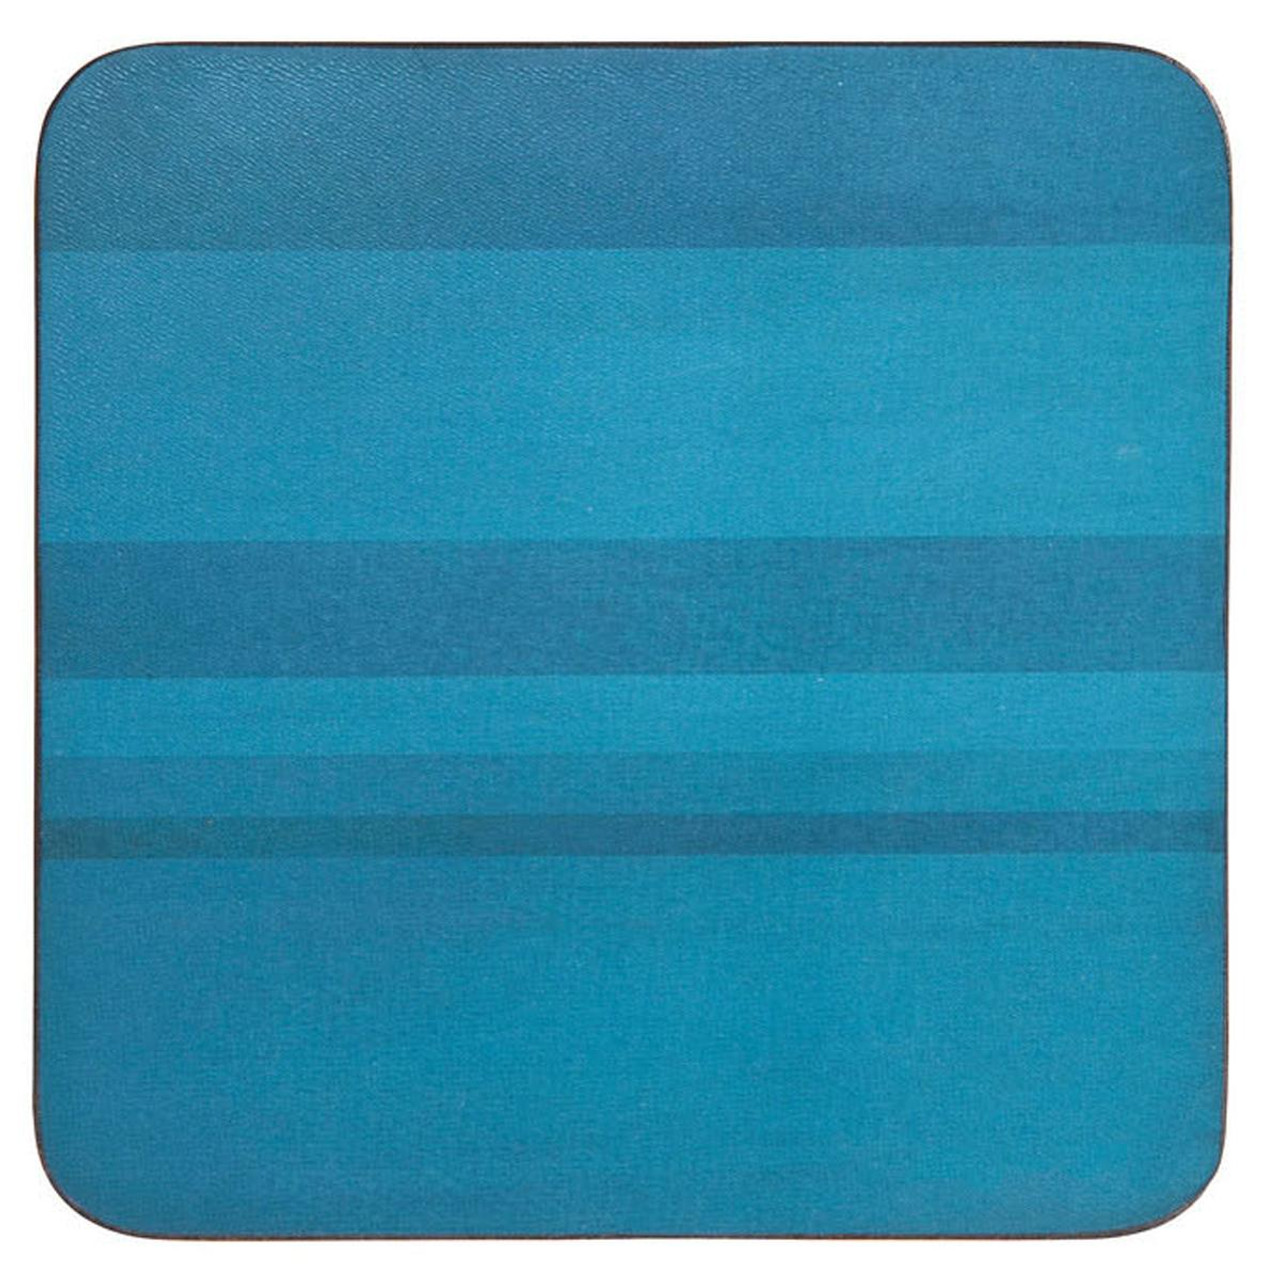 Denby Colours Turquoise Set Of 6 Coasters